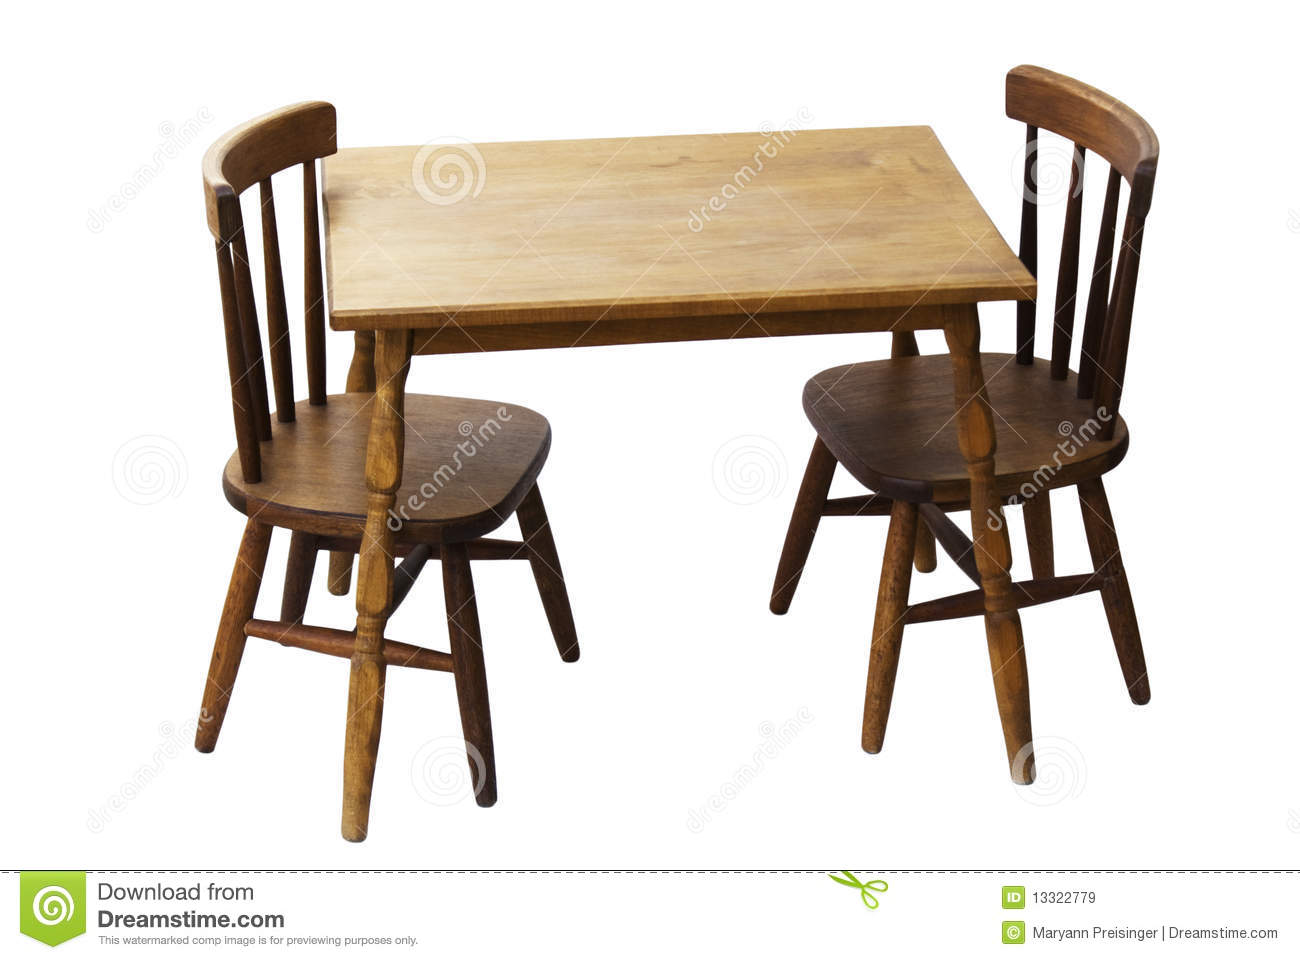 Kids Wooden Table And Chairs Children 39s Child Wood Table And Chairs Isolated Stock